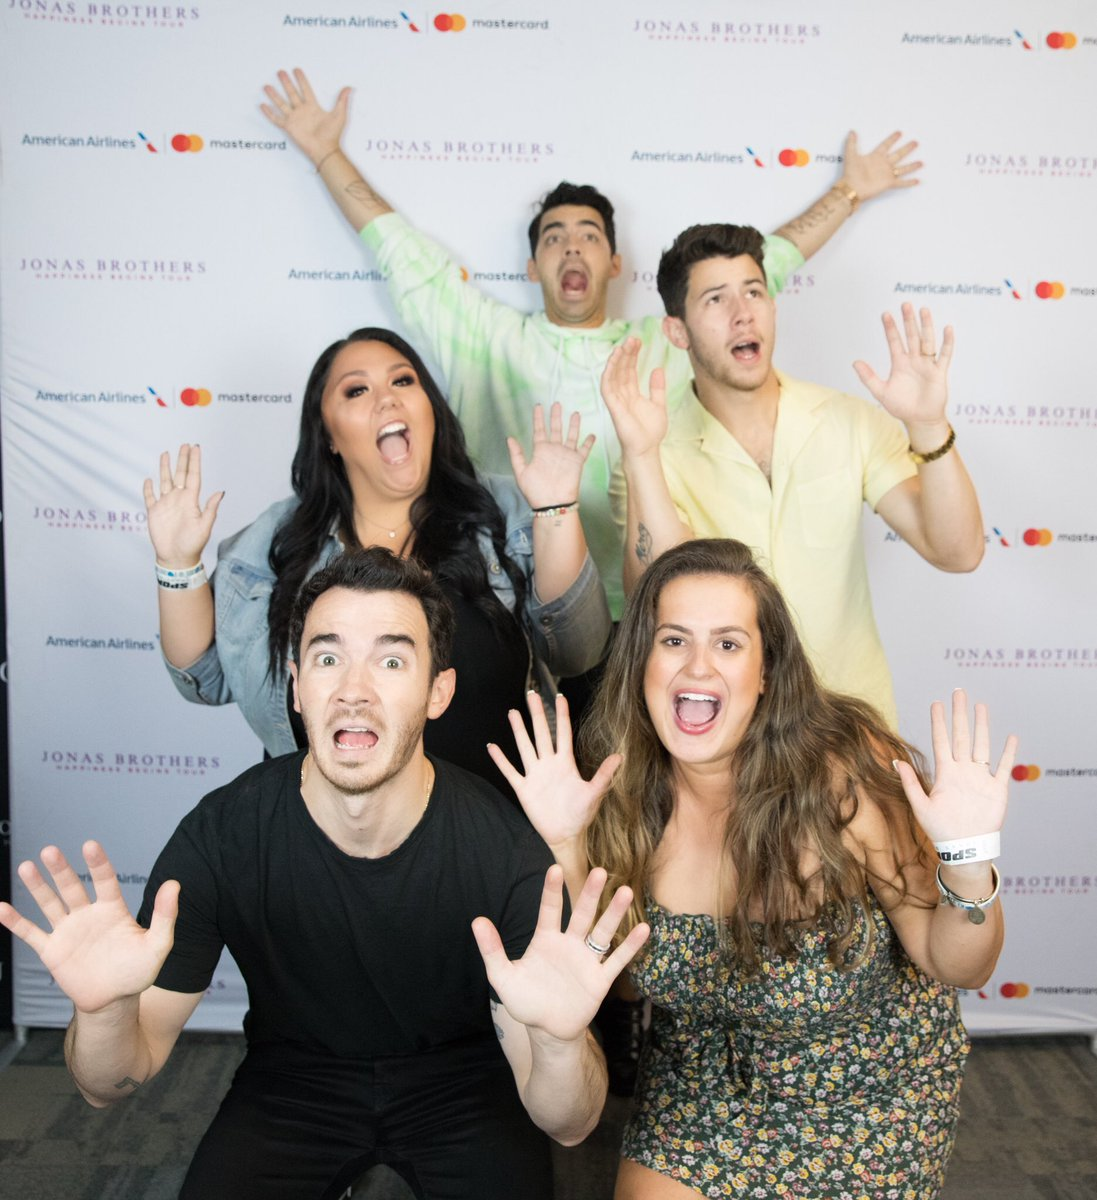 We are SCREAMING IN MY CAR this came out better than we'd ever imagine. We'll ride this rollercoaster forever with you @jonasbrothers  <br>http://pic.twitter.com/LxlKeFRZwa